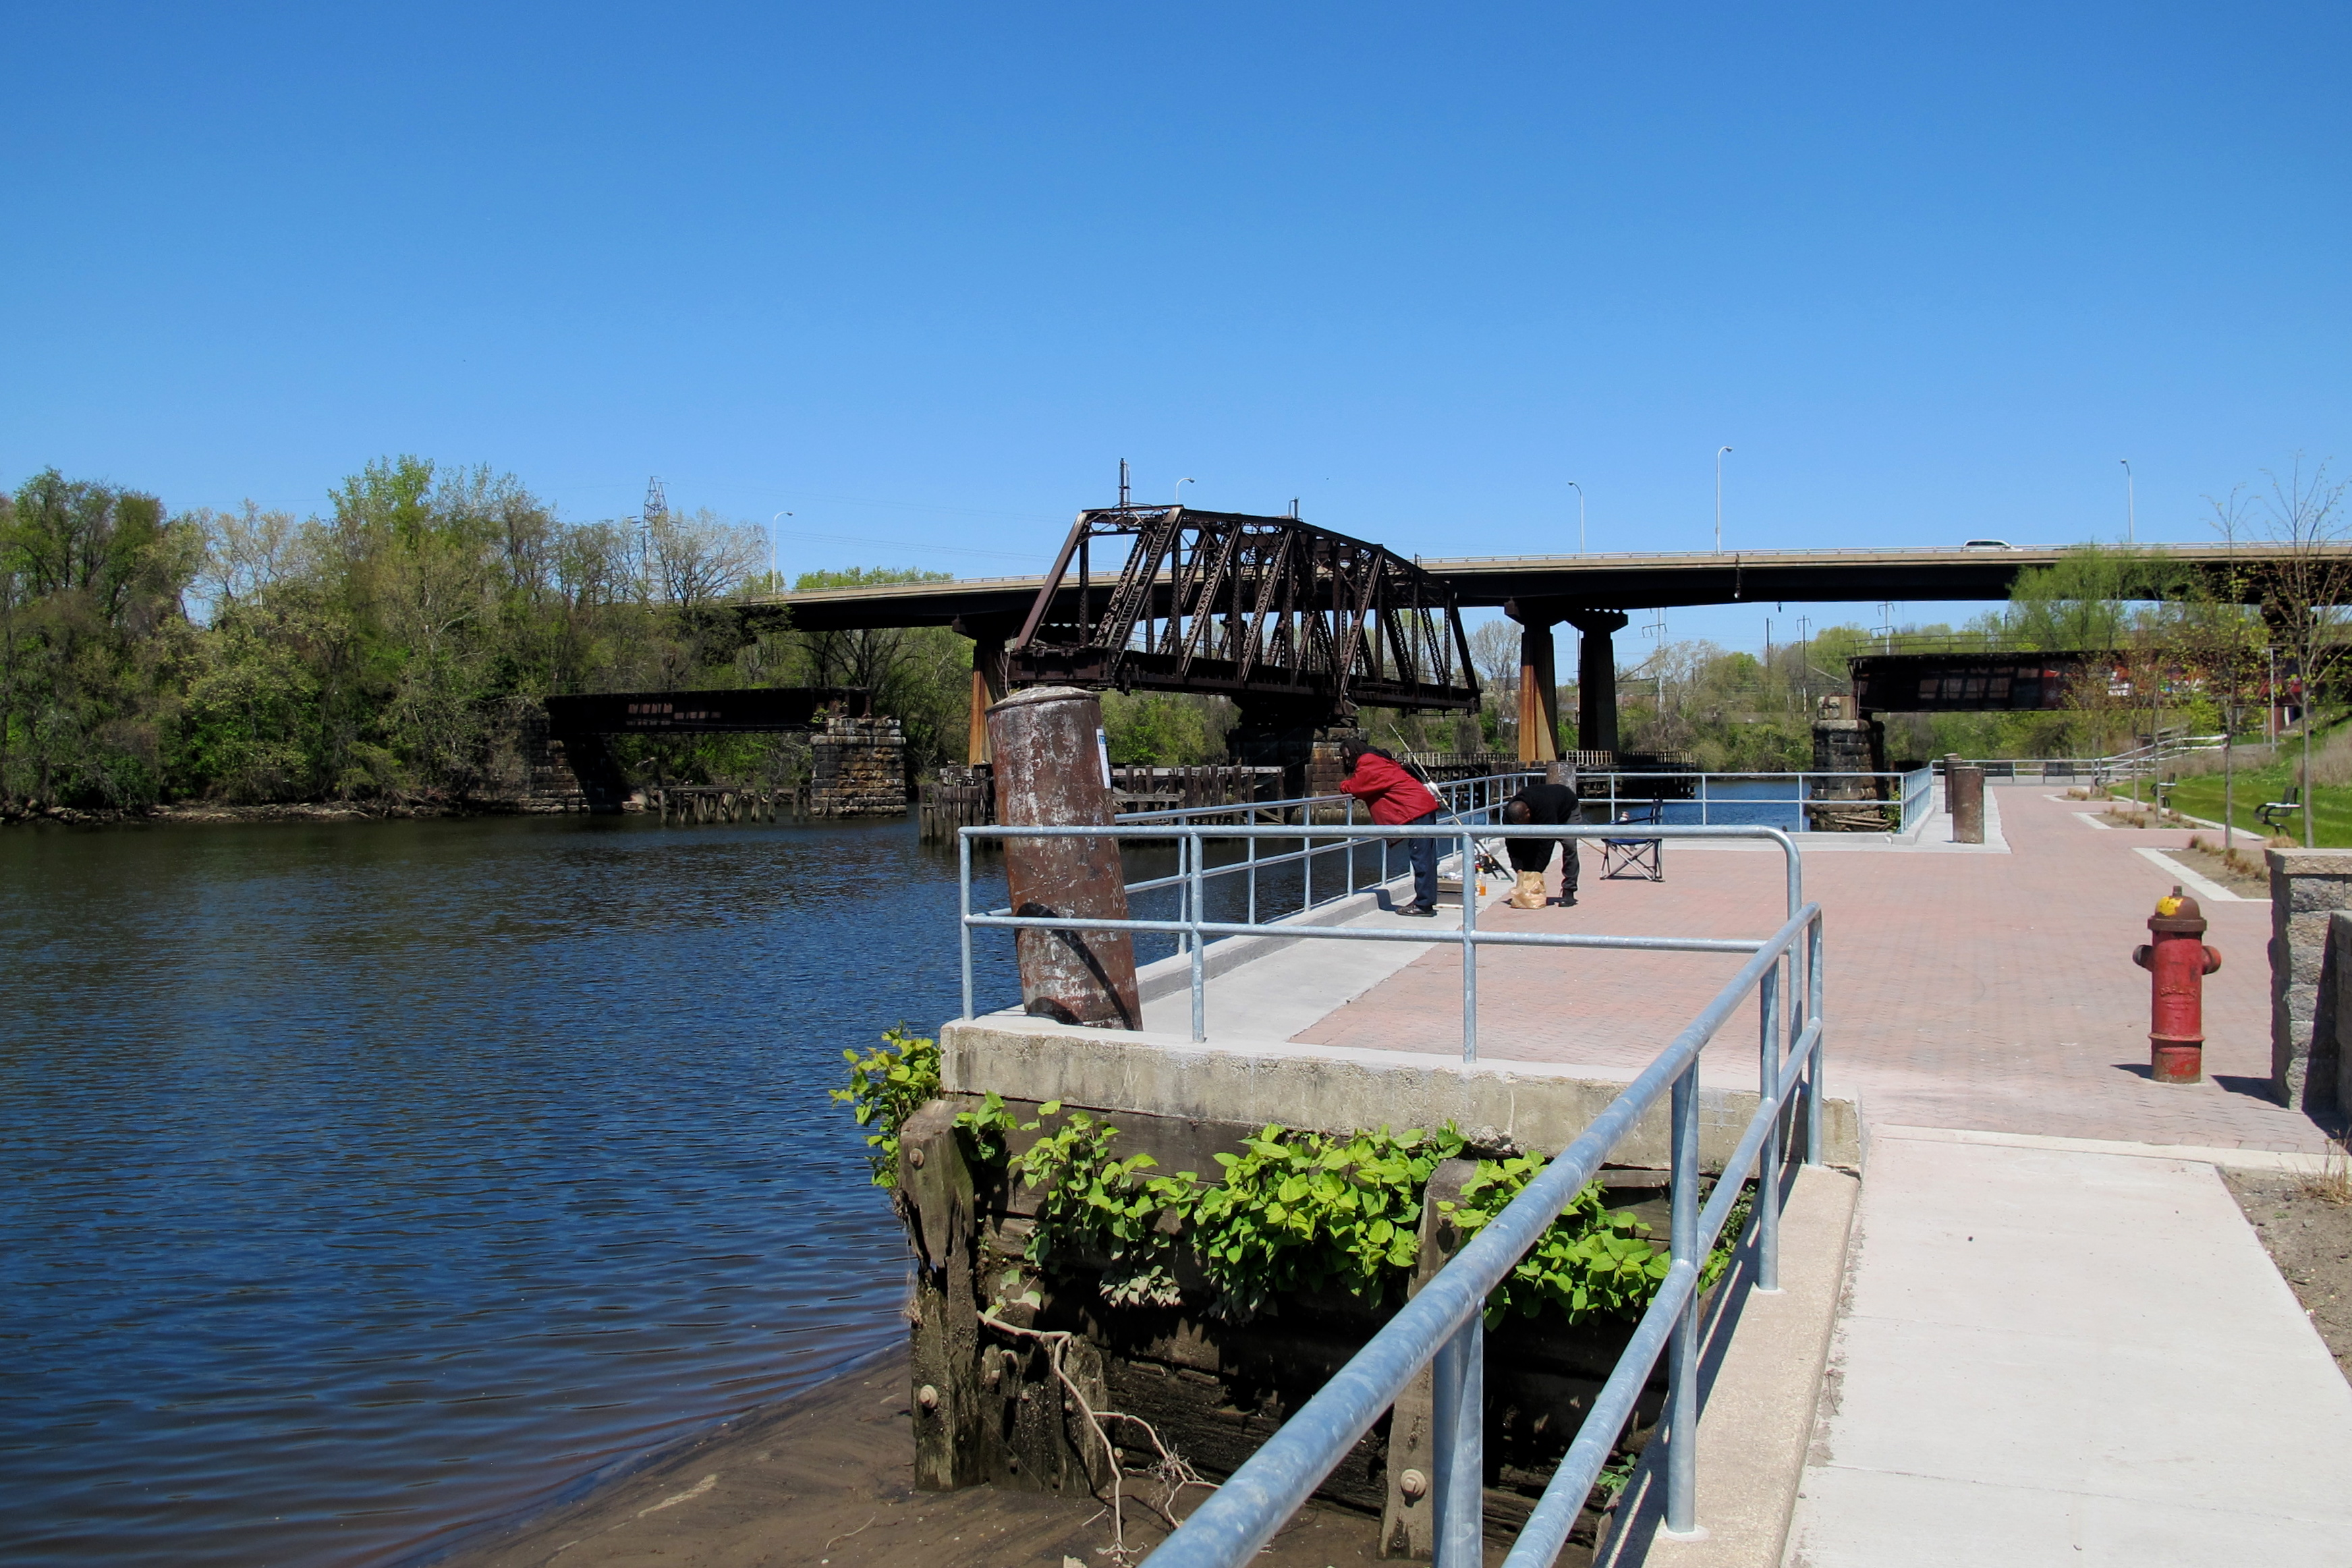 Will the swing bridge next to the Gray's Ferry bridge be reused to connect Gray's Ferry Crescent with Bartram's Mile?